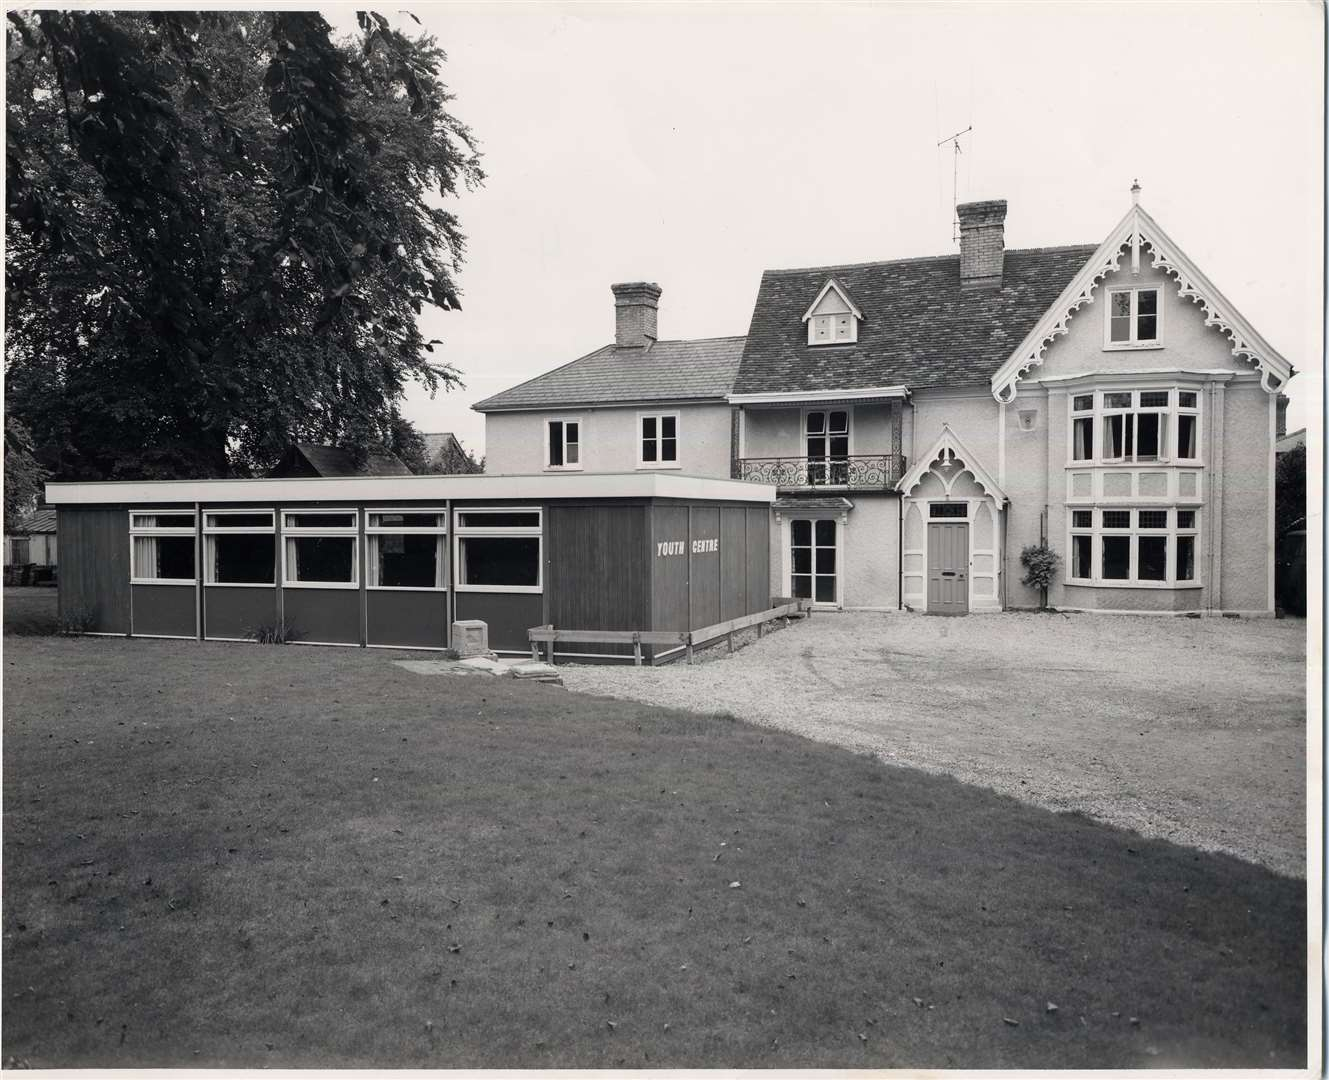 Haverhill Burton Cottage when it was a youth centre 1970s Picture: Haverhill and District Local History Group